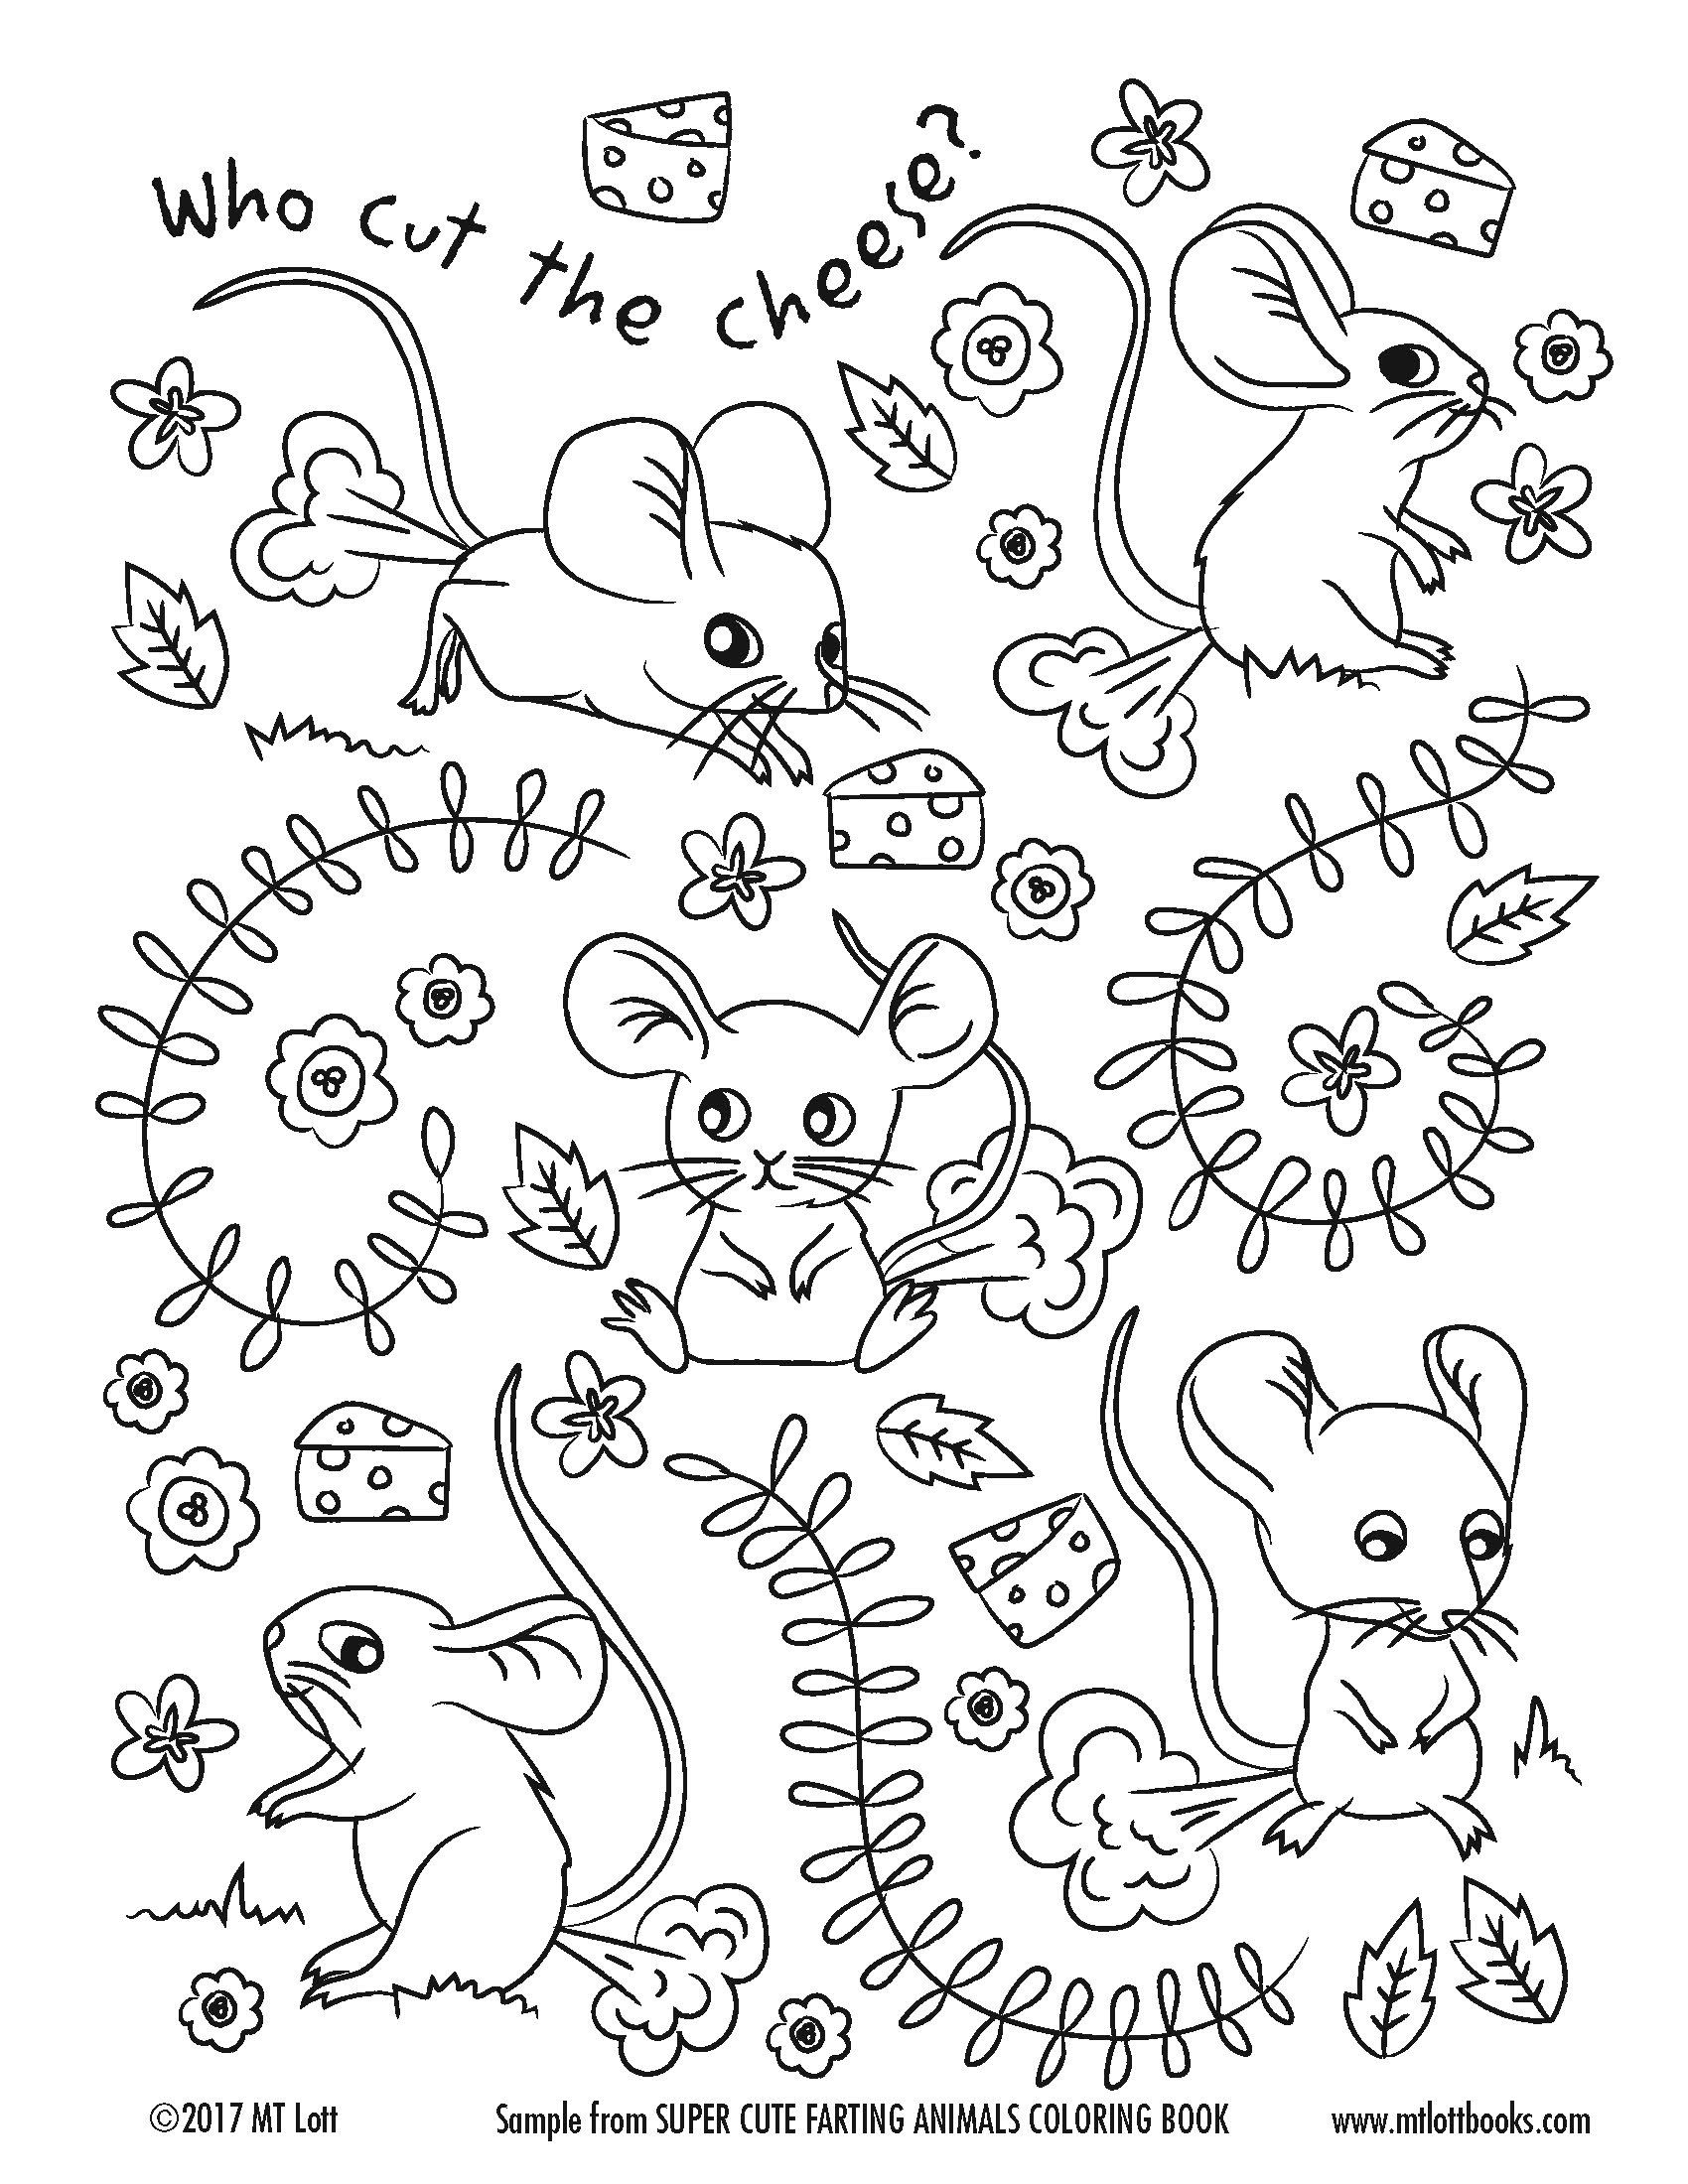 Free Coloring Page From MT Lotts Super Cute Farting Animals Book